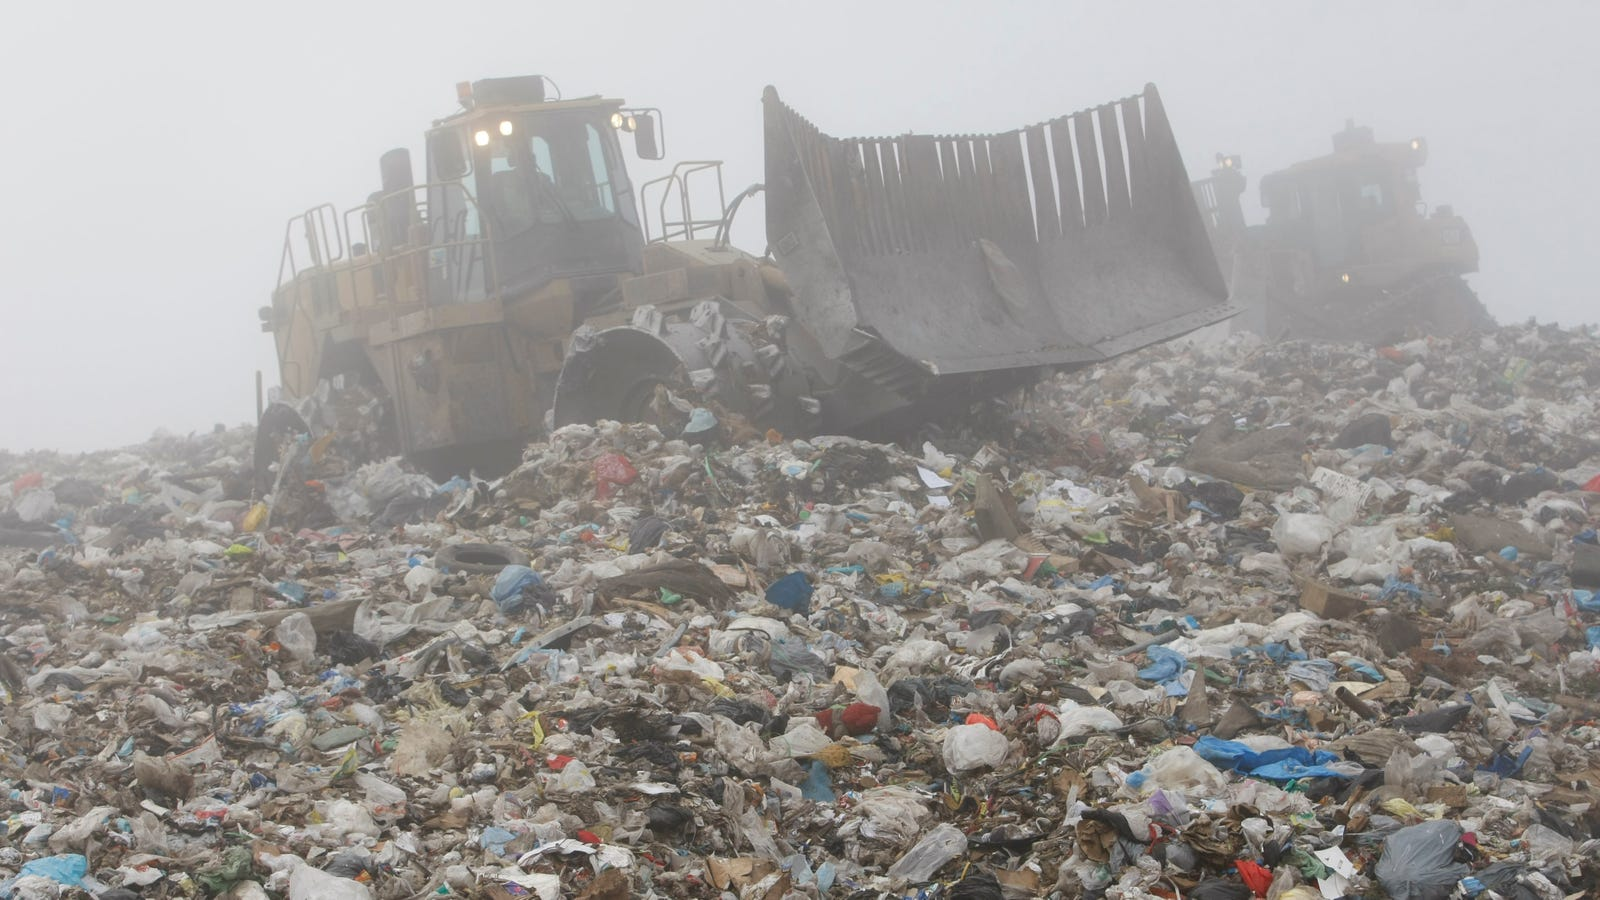 Man Who Threw Away a Fortune in Bitcoin Now Looking to Dig Up a Landfill